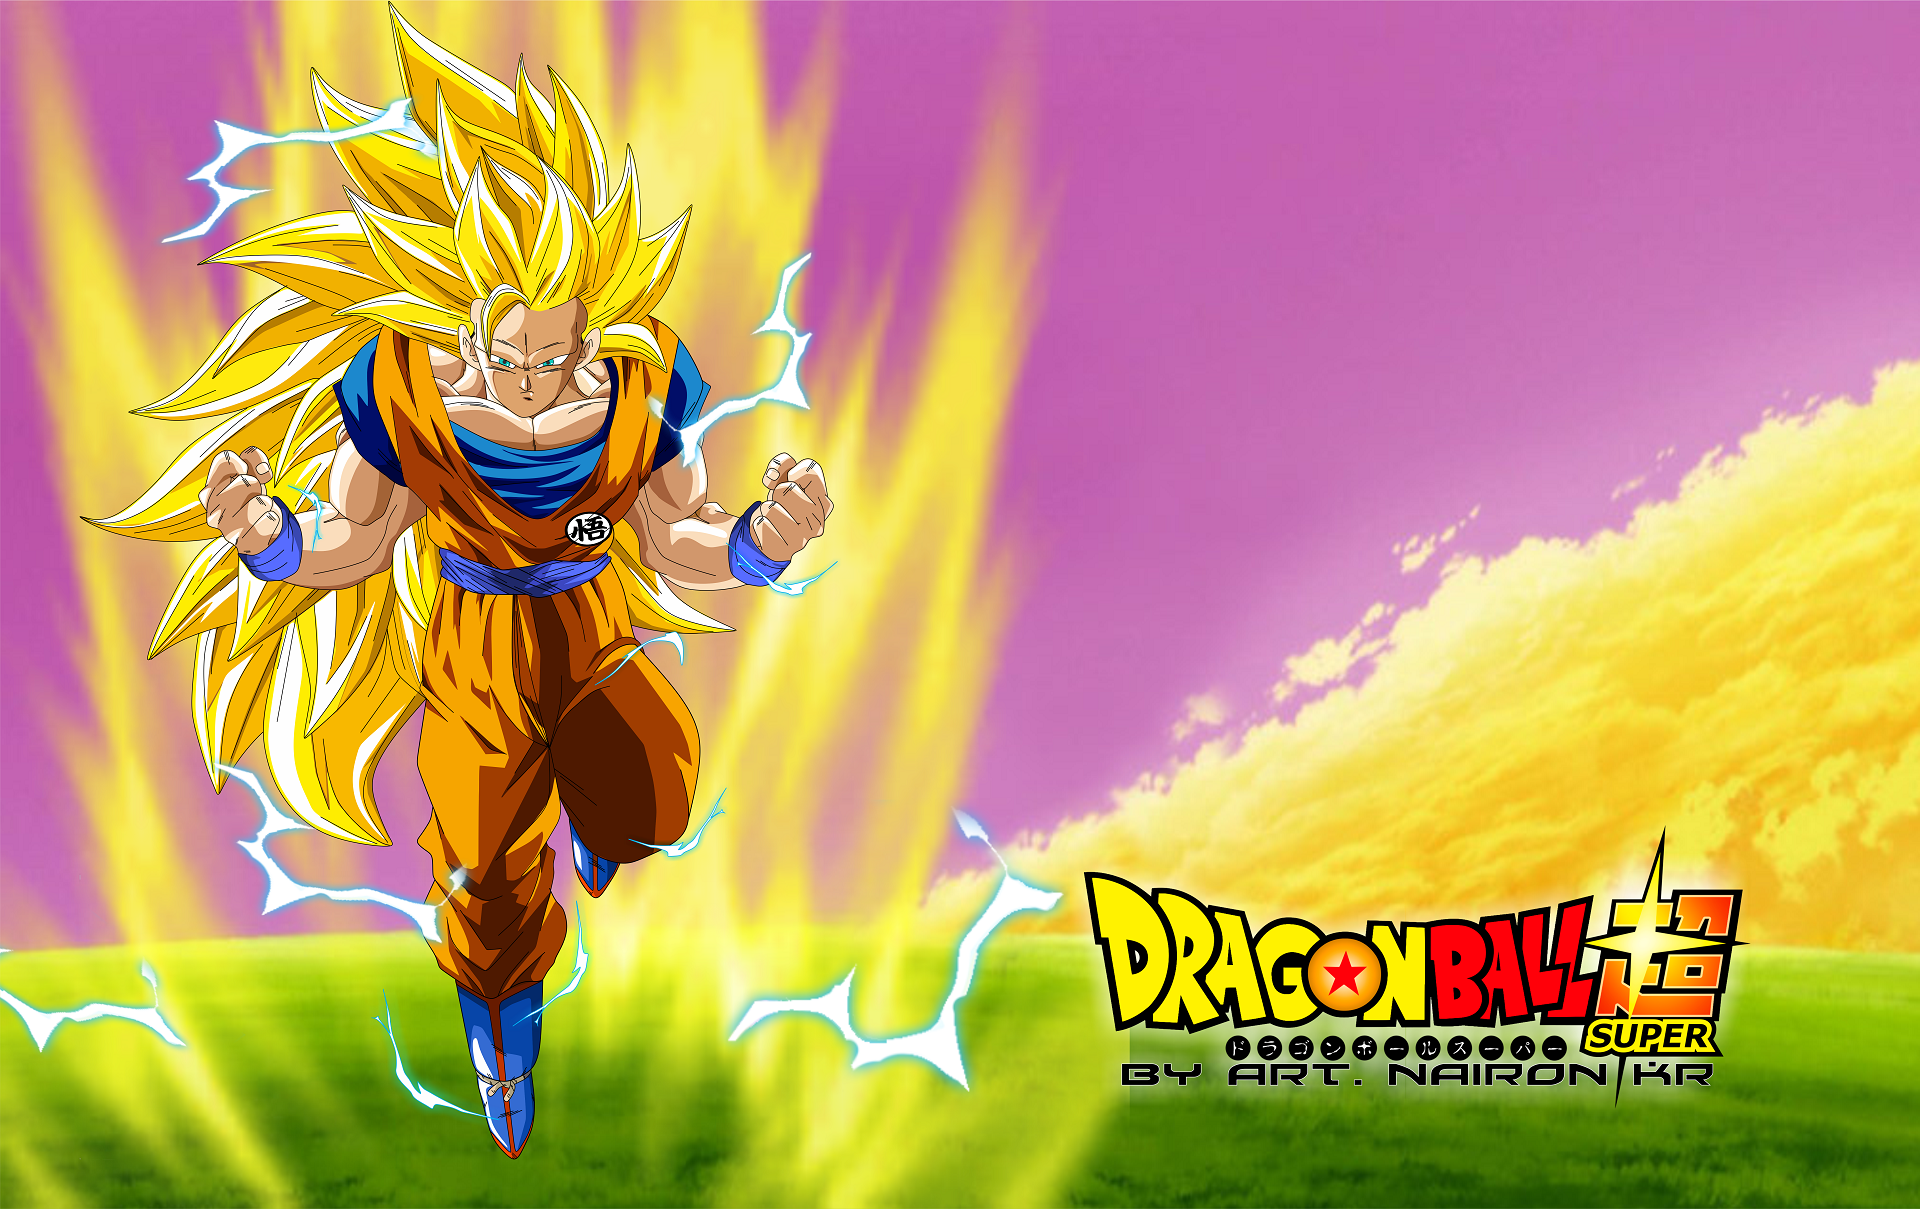 Fondos de dragon ball super wallpapers dragon ball z - Imagenes de dragon ball super descargar ...